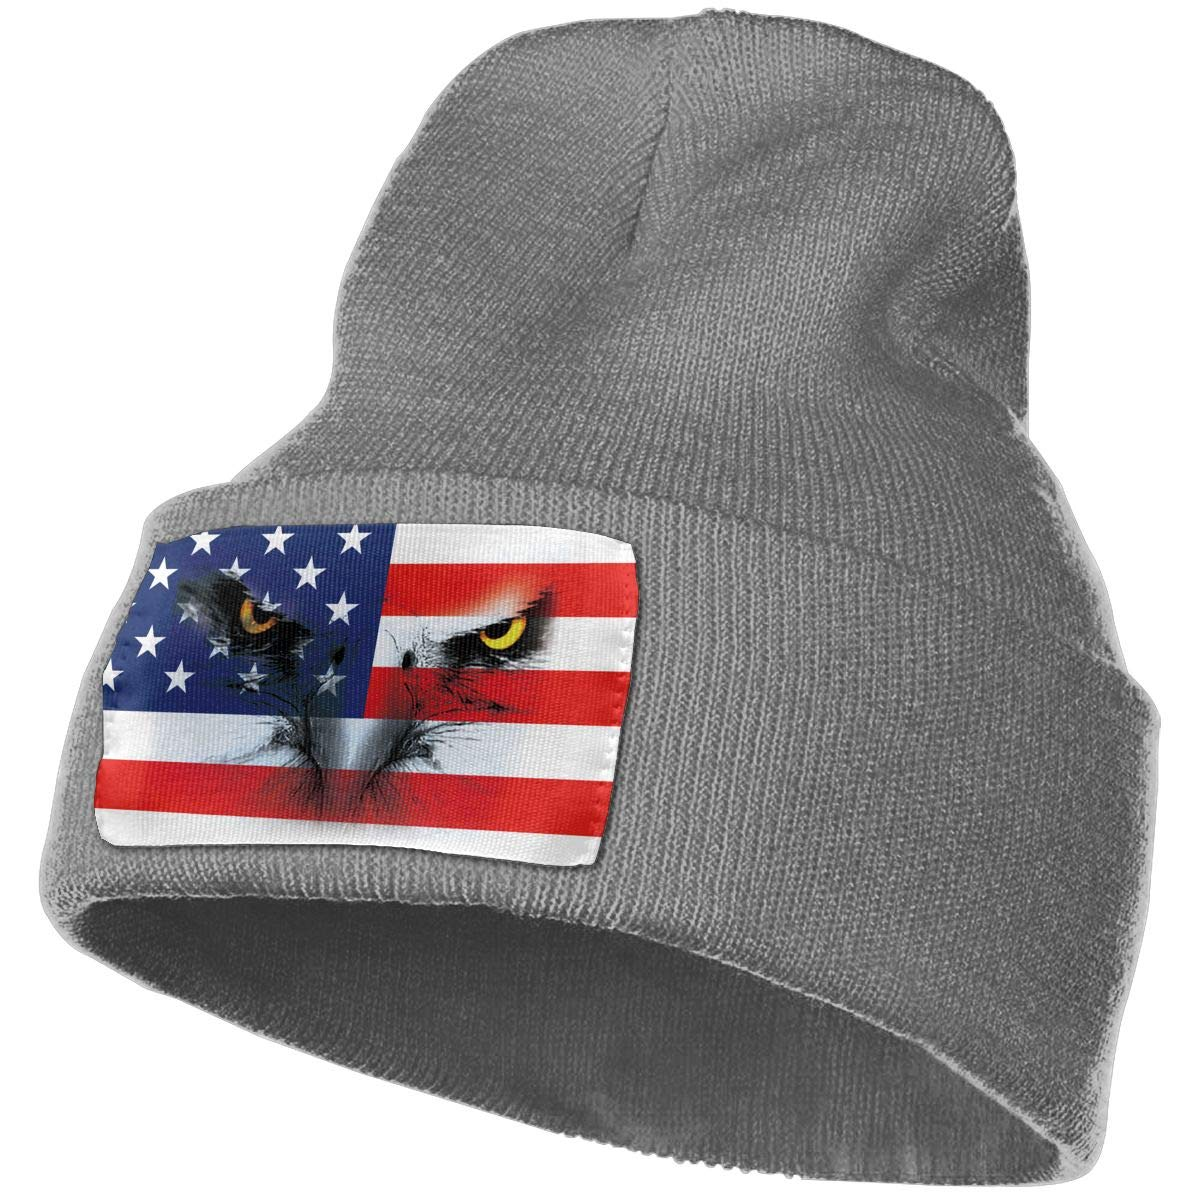 ee5911360d3 Amazon.com  American Eagle Winter Beanie Hat Soft   Warm Chunky Skull Wool Knit  Hats Cap for Men Women  Clothing